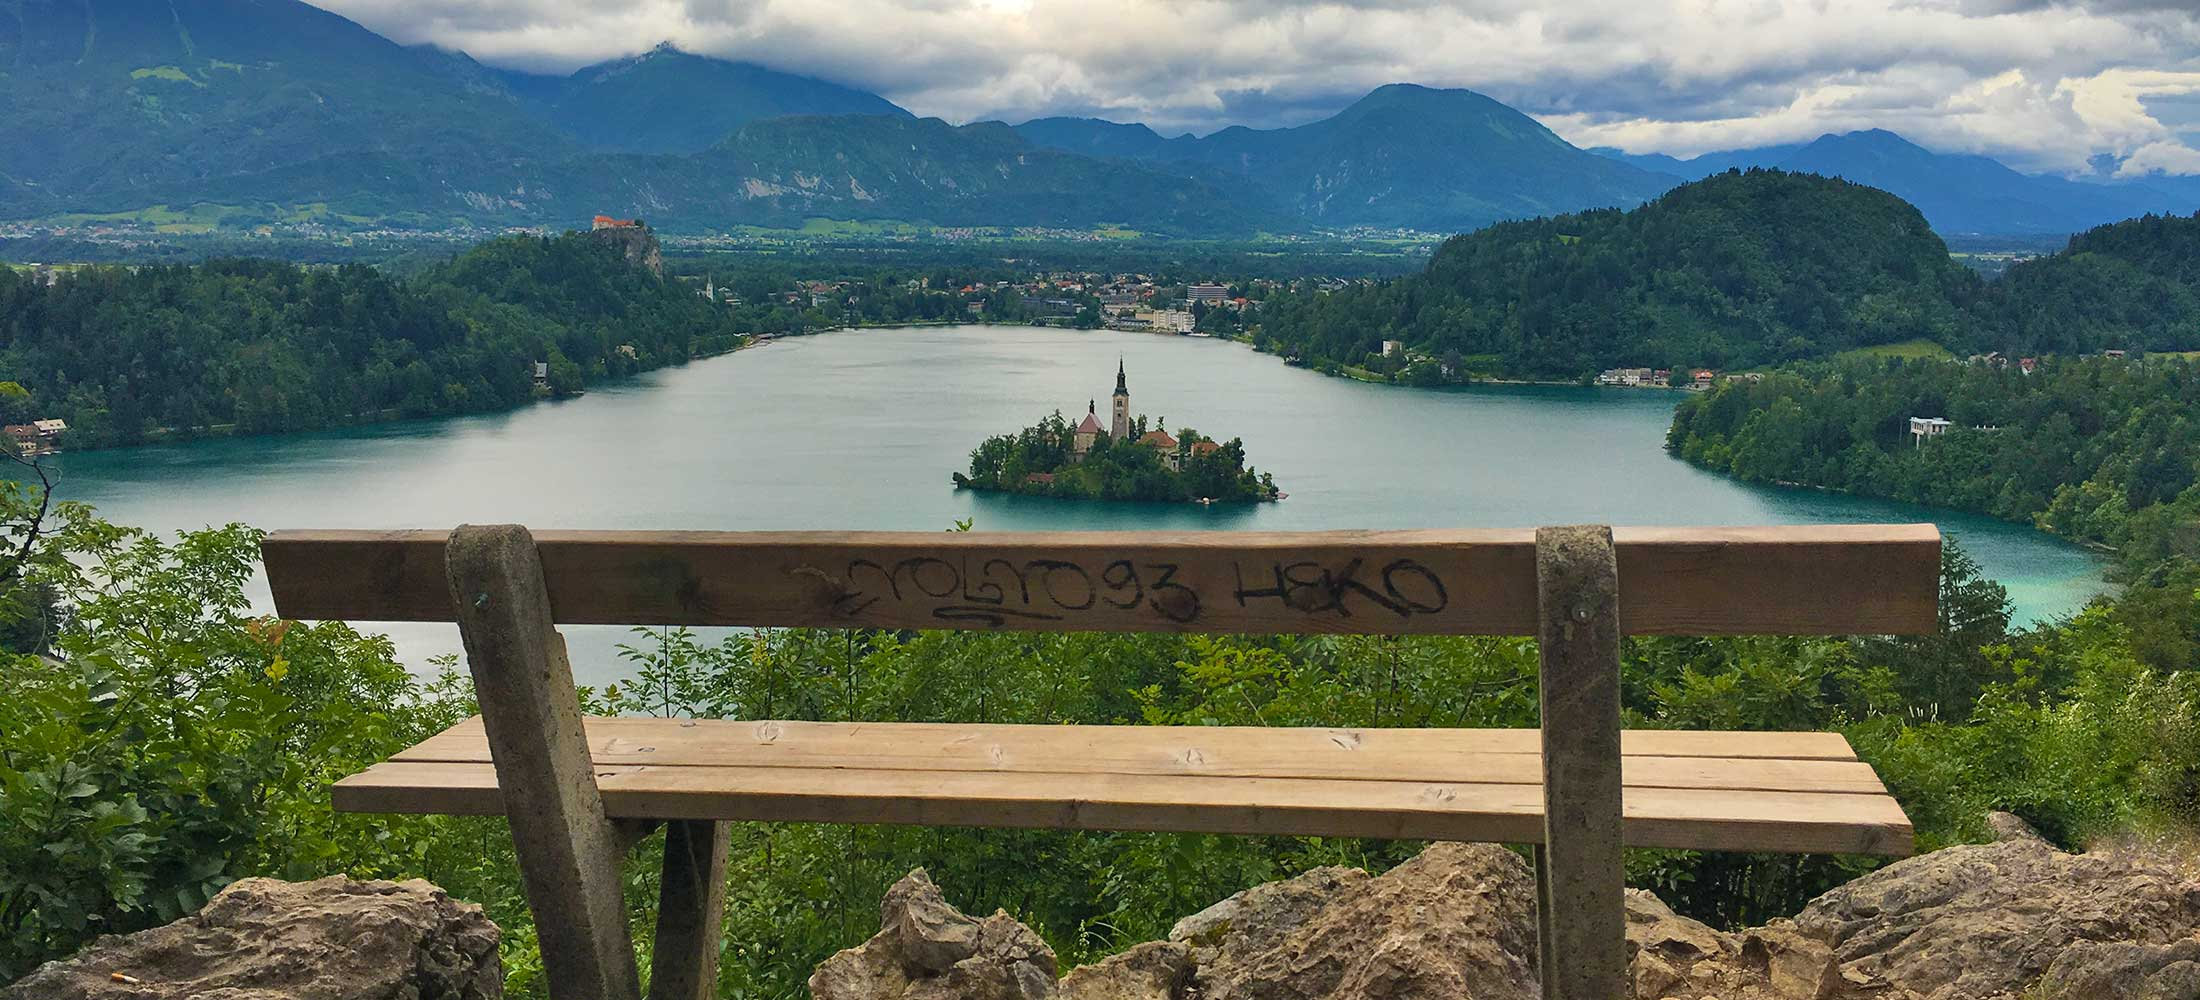 Travel To Slovenia Visa Requirements